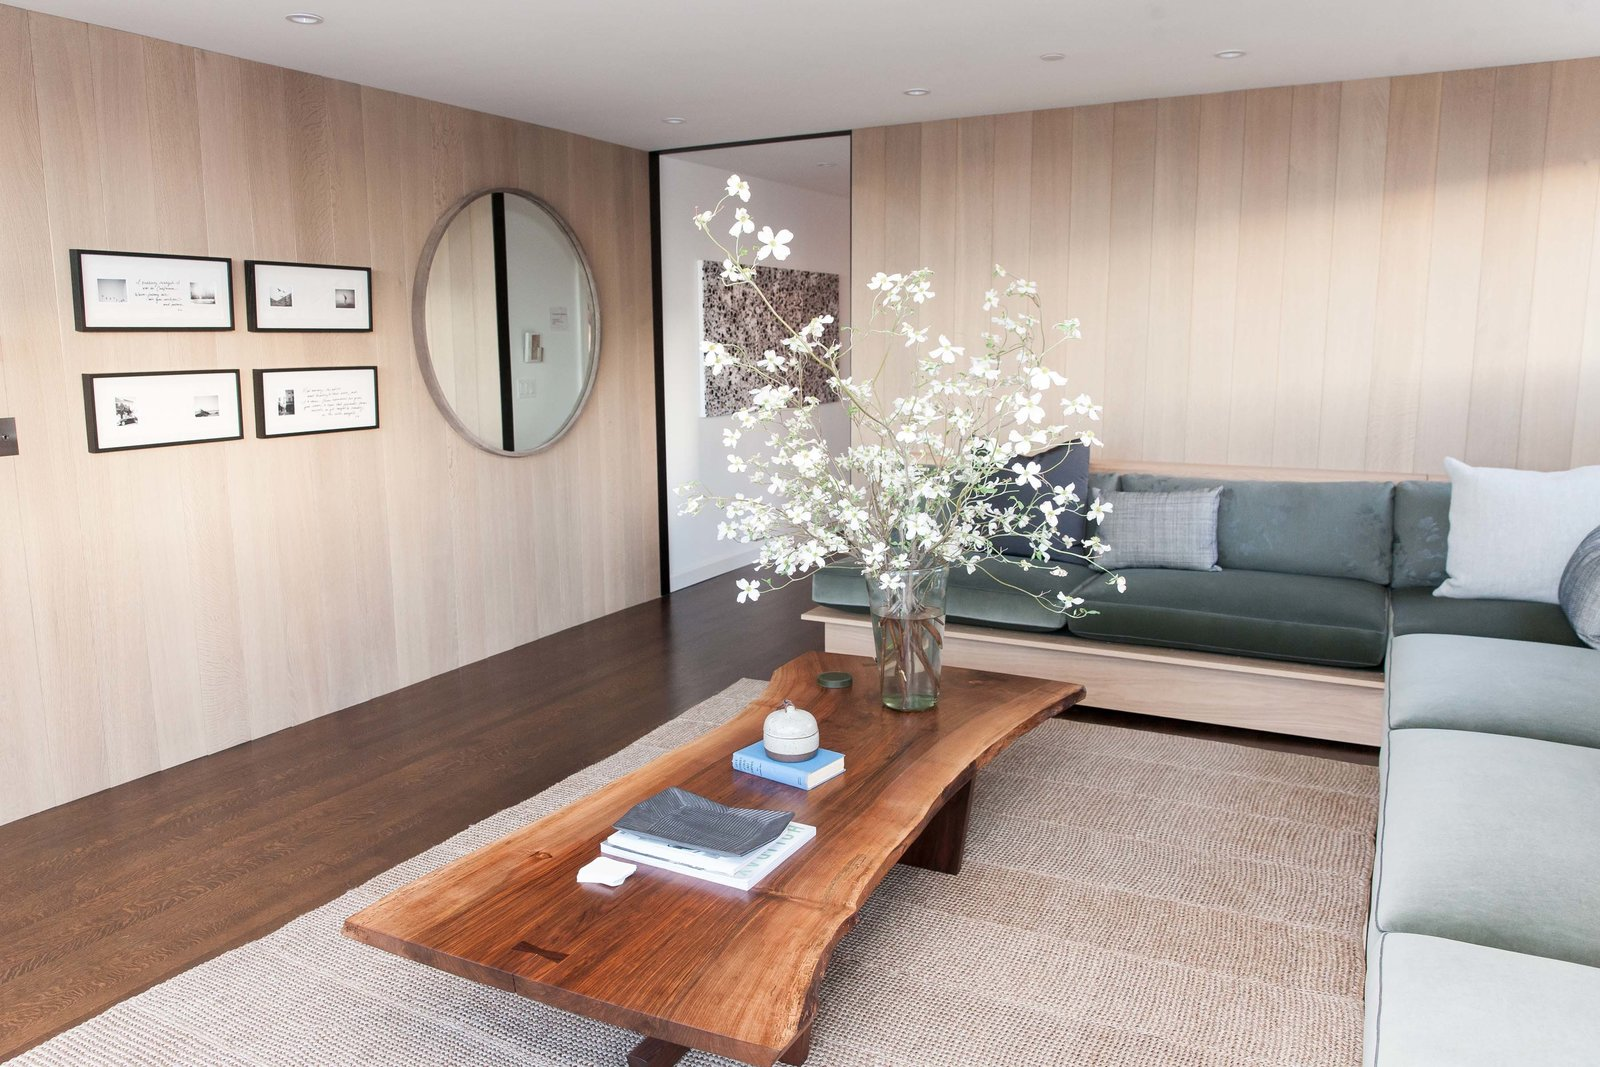 The penthouse living room and bar by Catherine Kwong features a Nakashima Cocktail Table. Kwong flew to Pennsylvania to meet with George Nakashima's daughter, Mira, and selected the slab of walnut that would anchor the room. Peek Inside the 2017 San Francisco Decorator Showcase - Photo 16 of 17